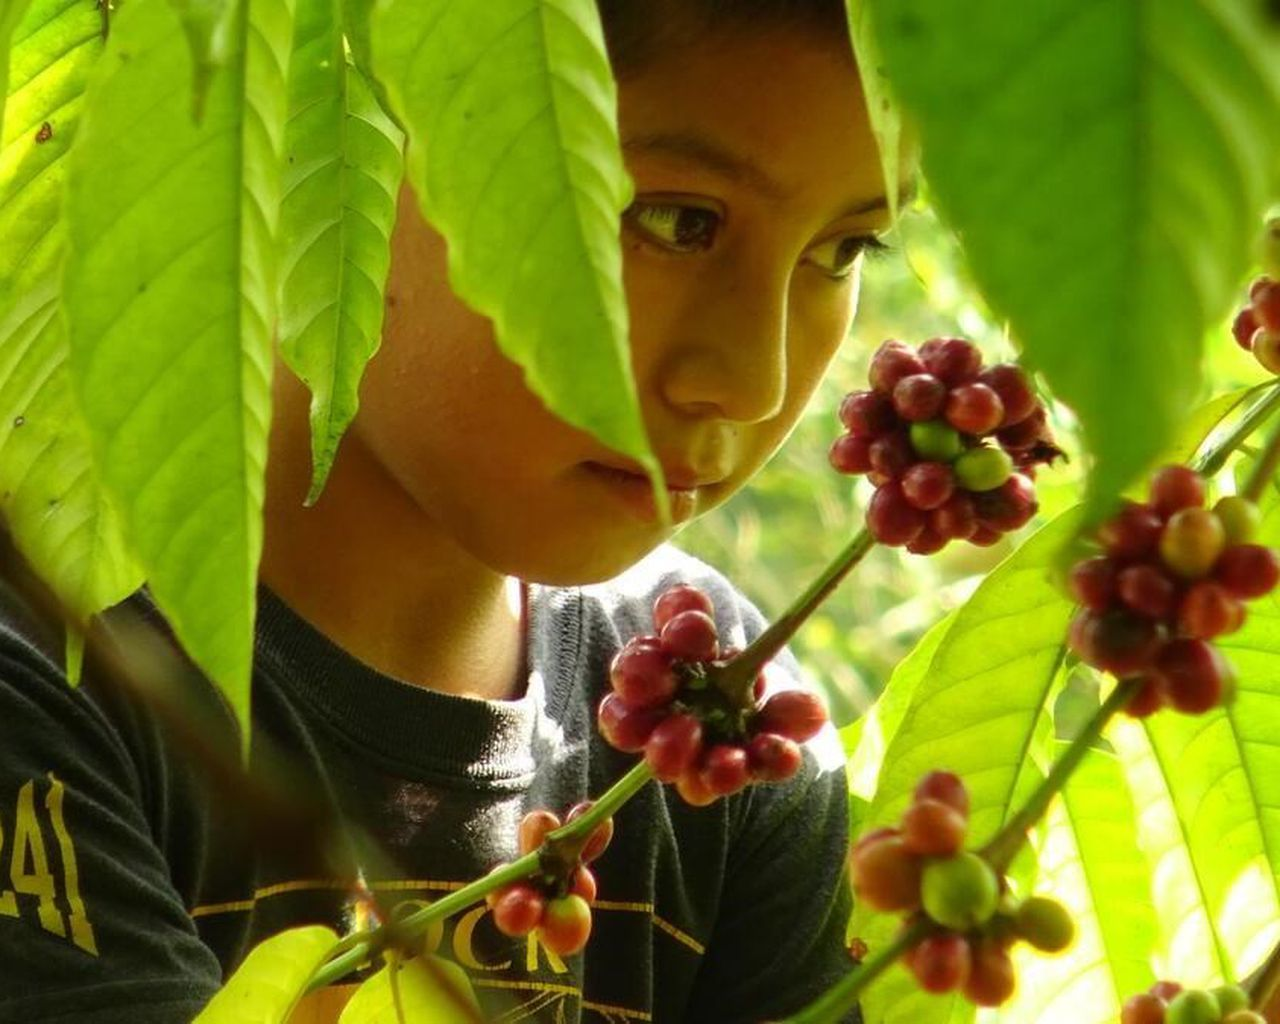 Child Labour Behind Every Canadian's Grocery Haul, And It May Get Worse: World Vision photo